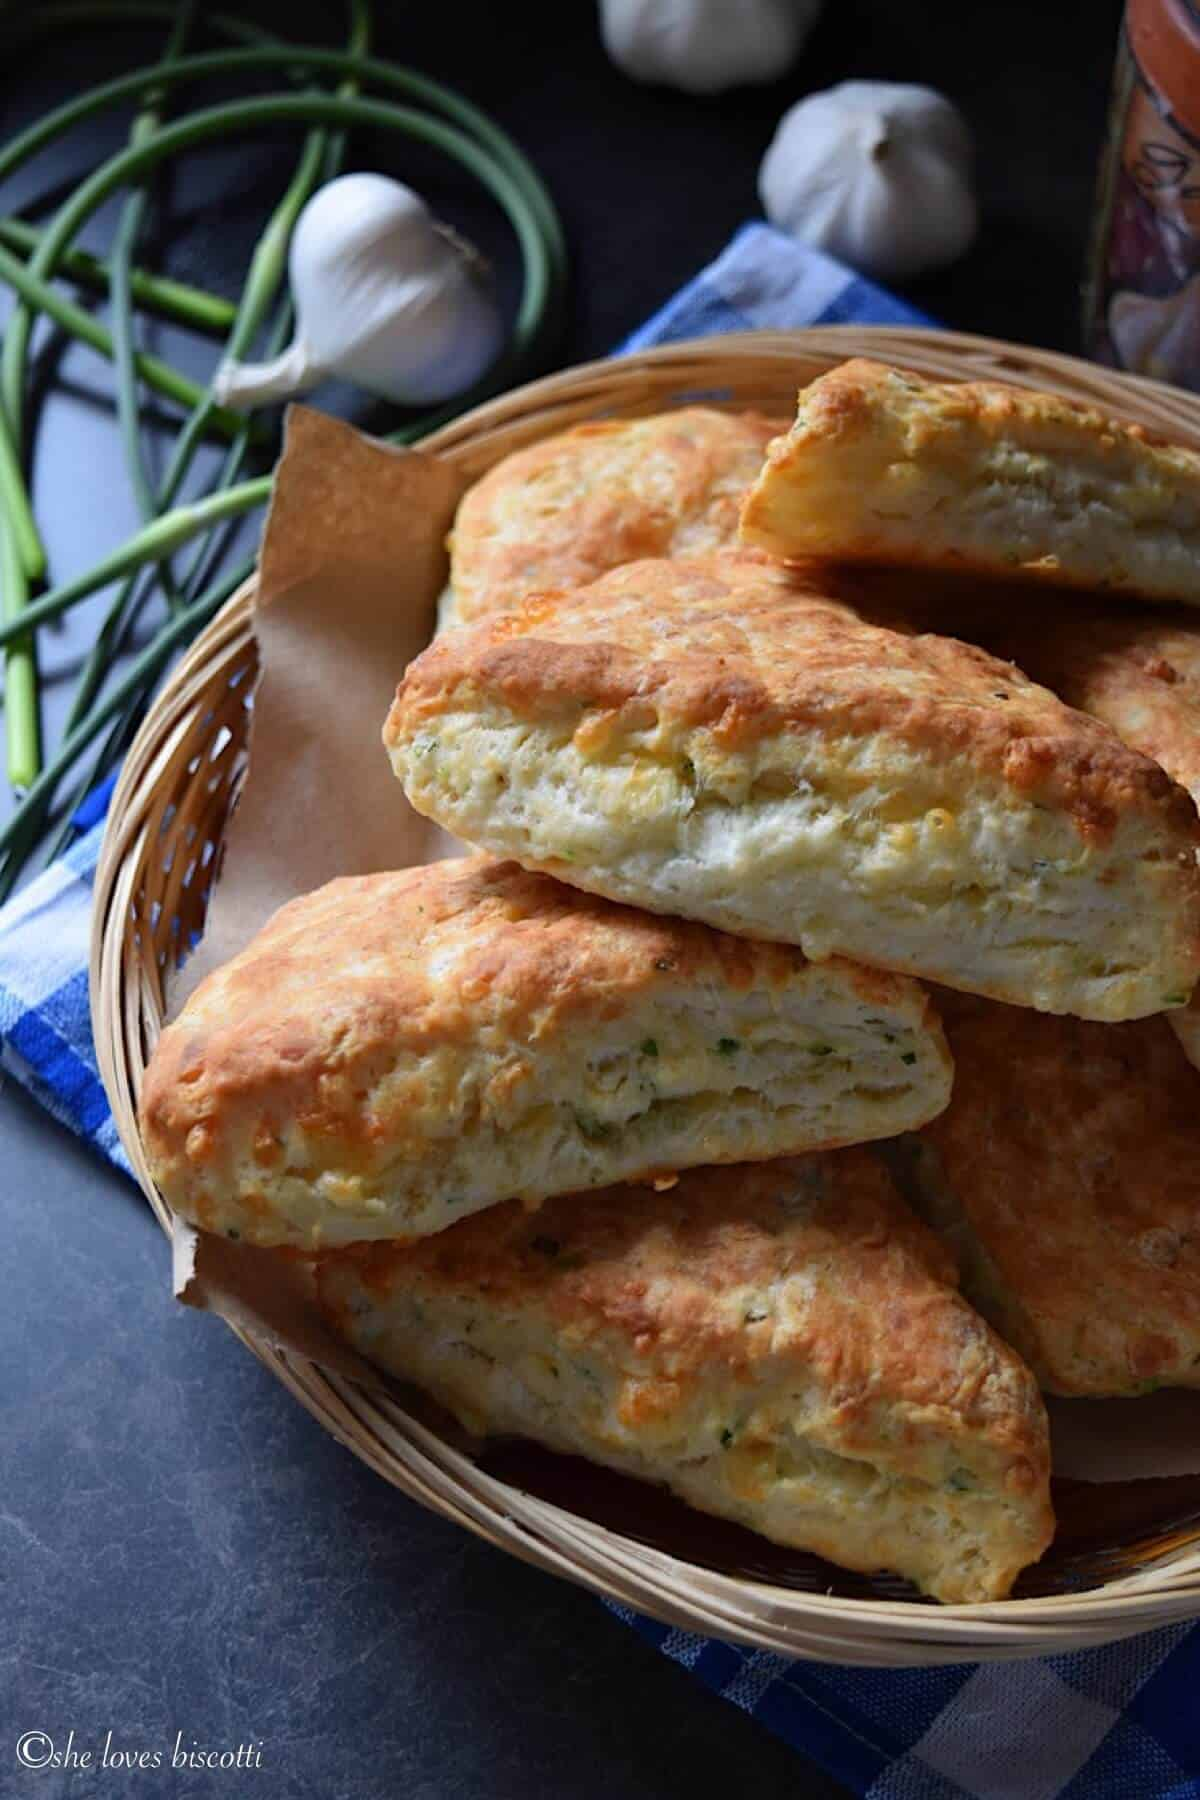 Cheddar Biscuits made with garlic scapes in a wicker basket.